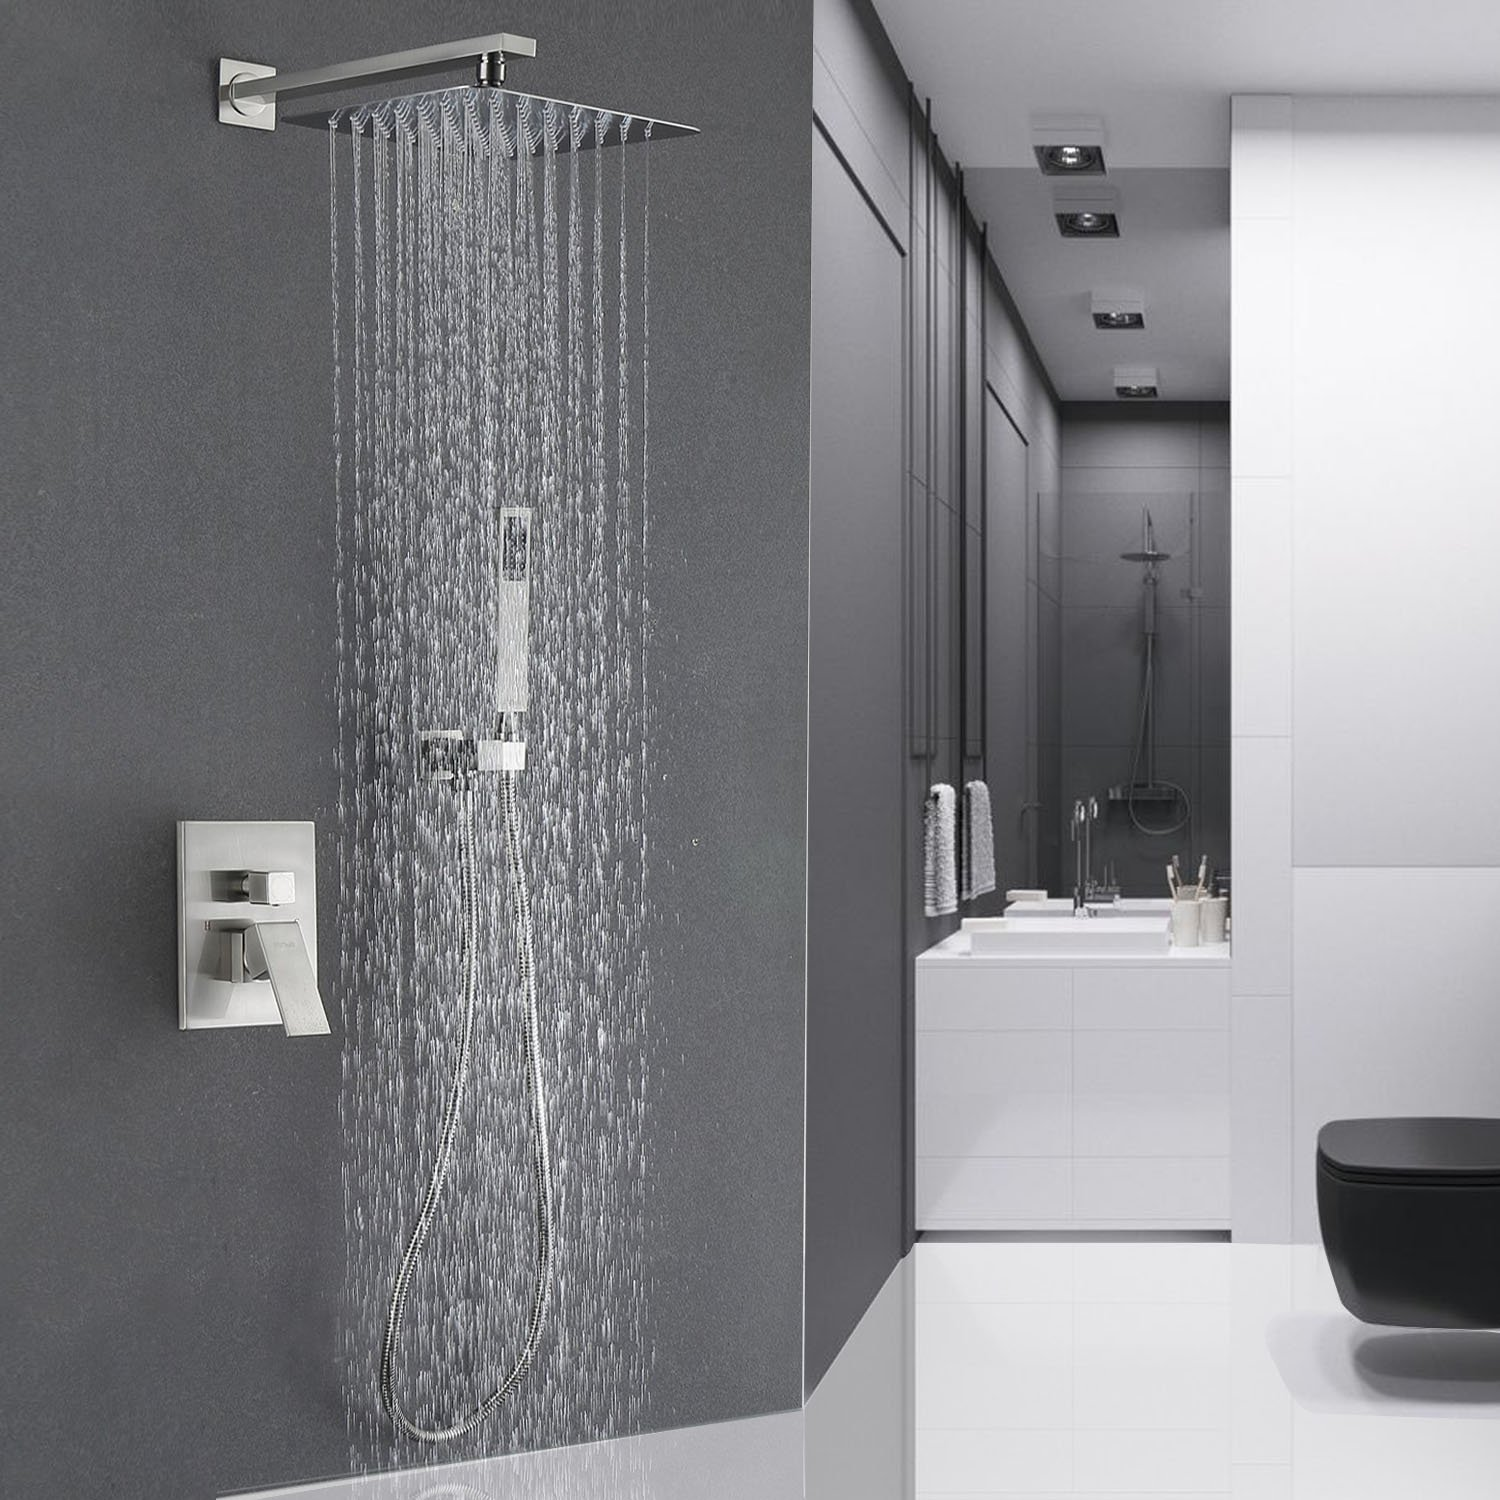 Esnbia Luxury Rain Shower Systems Wall Mounted Shower Combo Set with ...